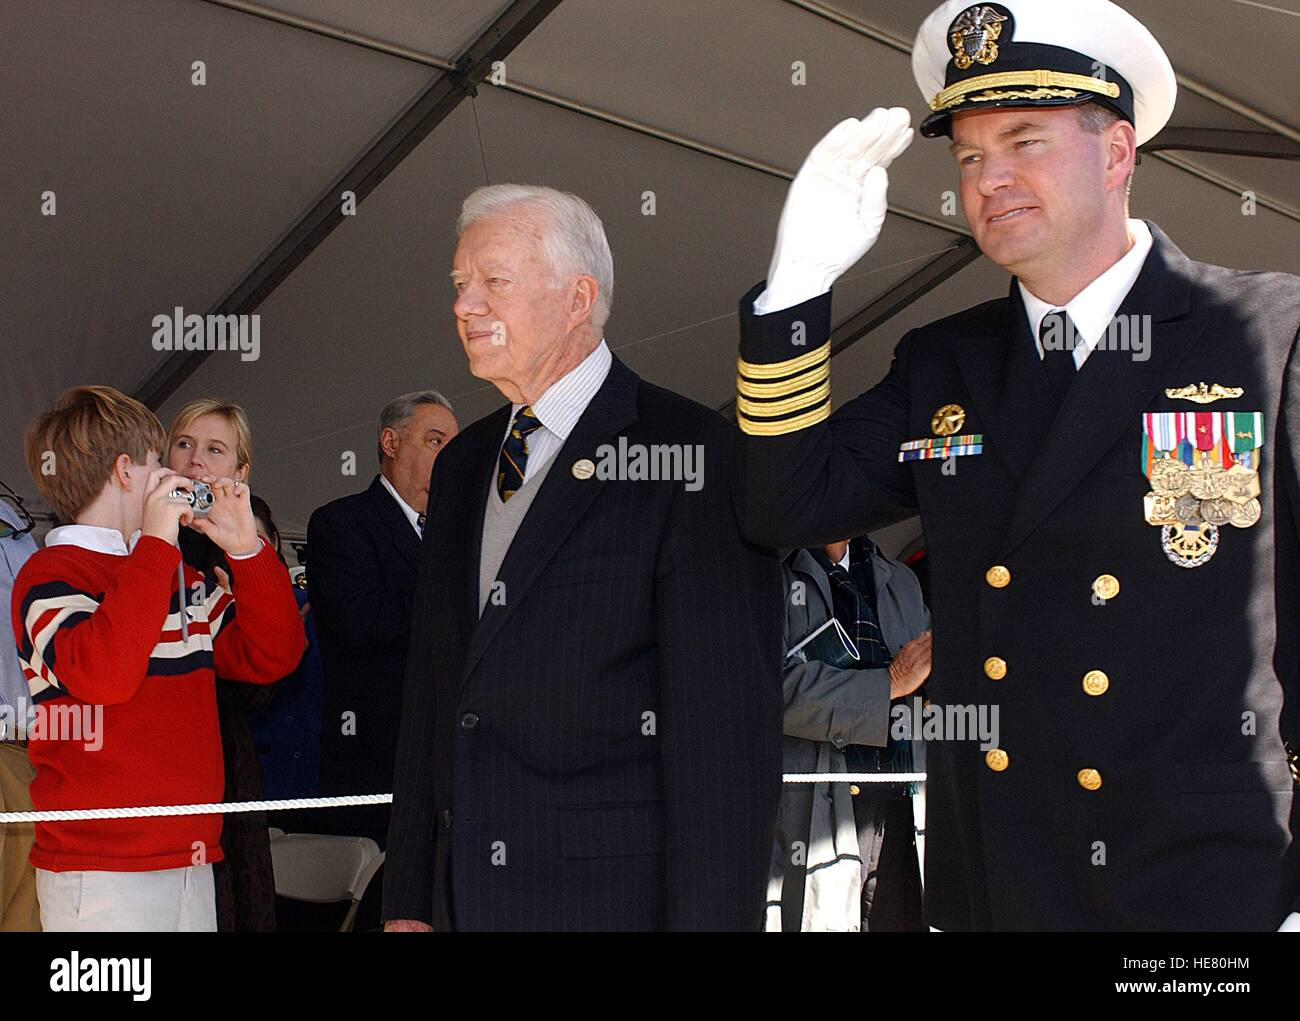 USN Commanding Officer Robert Kelso escorts former U.S. President Jimmy Carter past a crowd at the commissioning - Stock Image